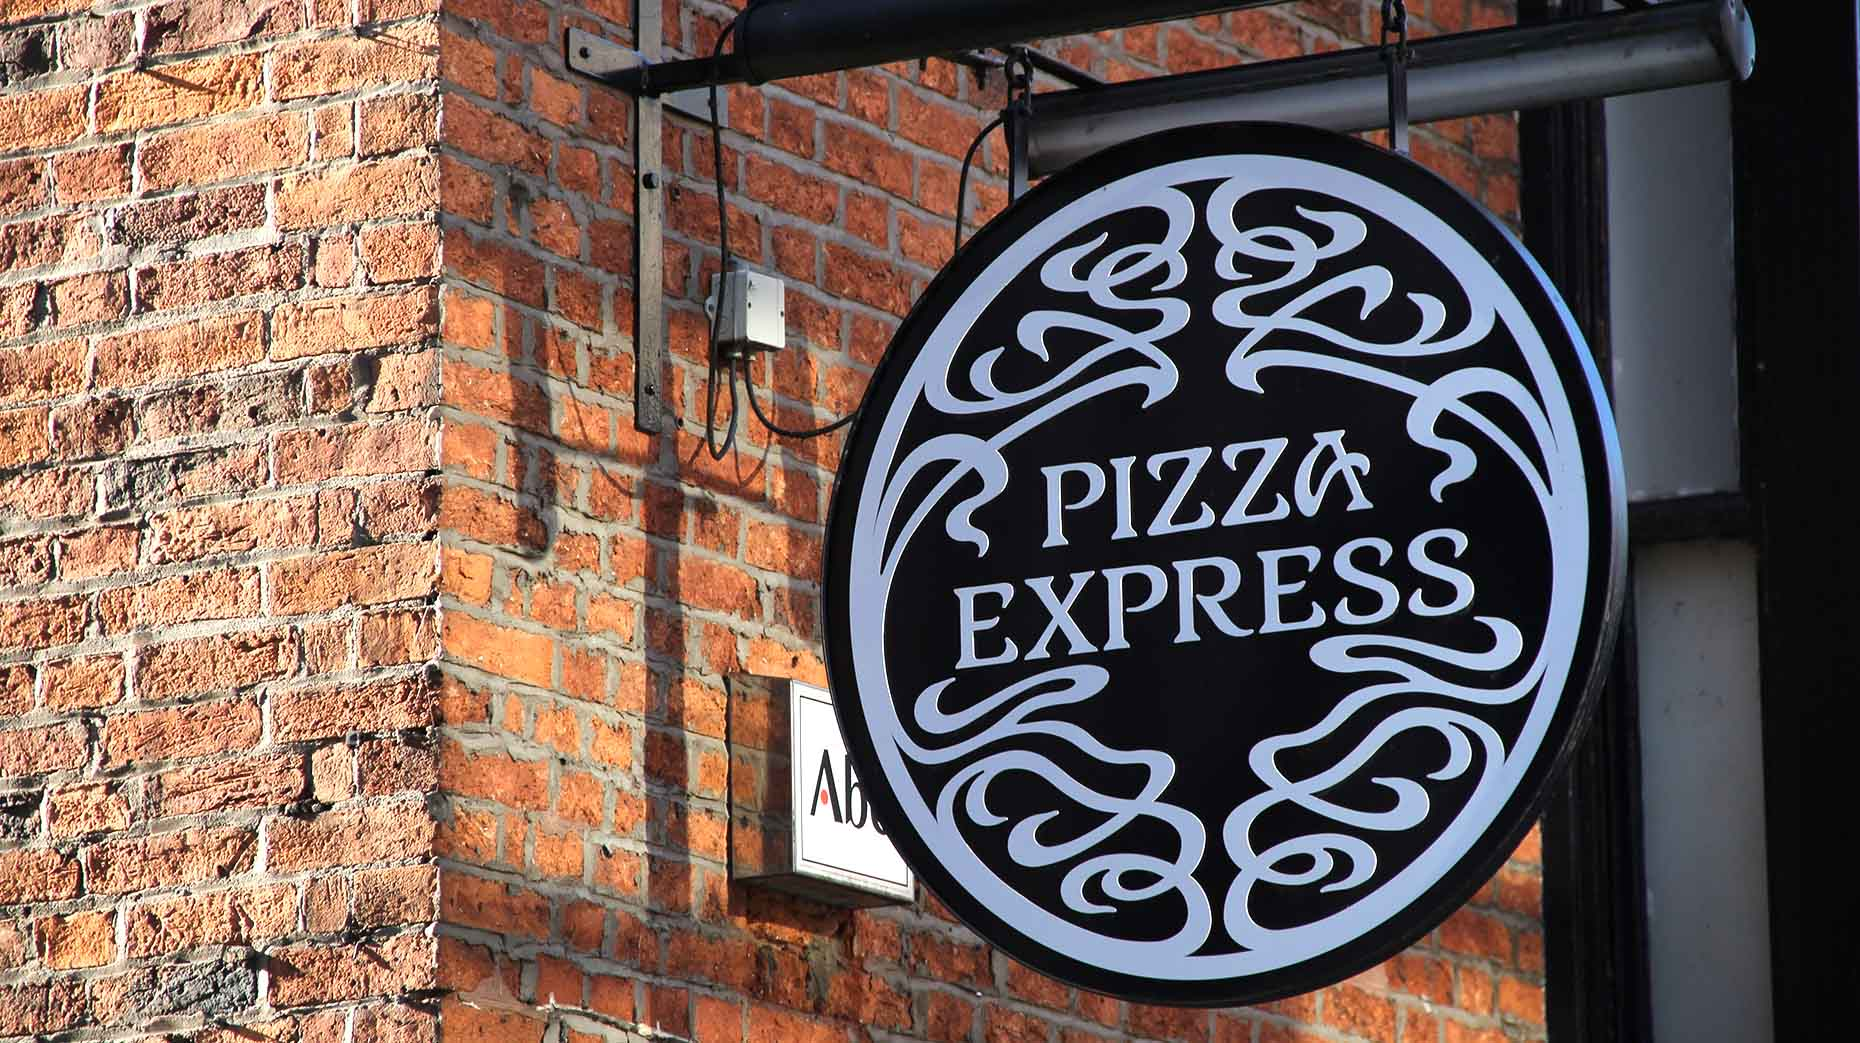 Former Lincoln Pizza Express staff claims maternity ...